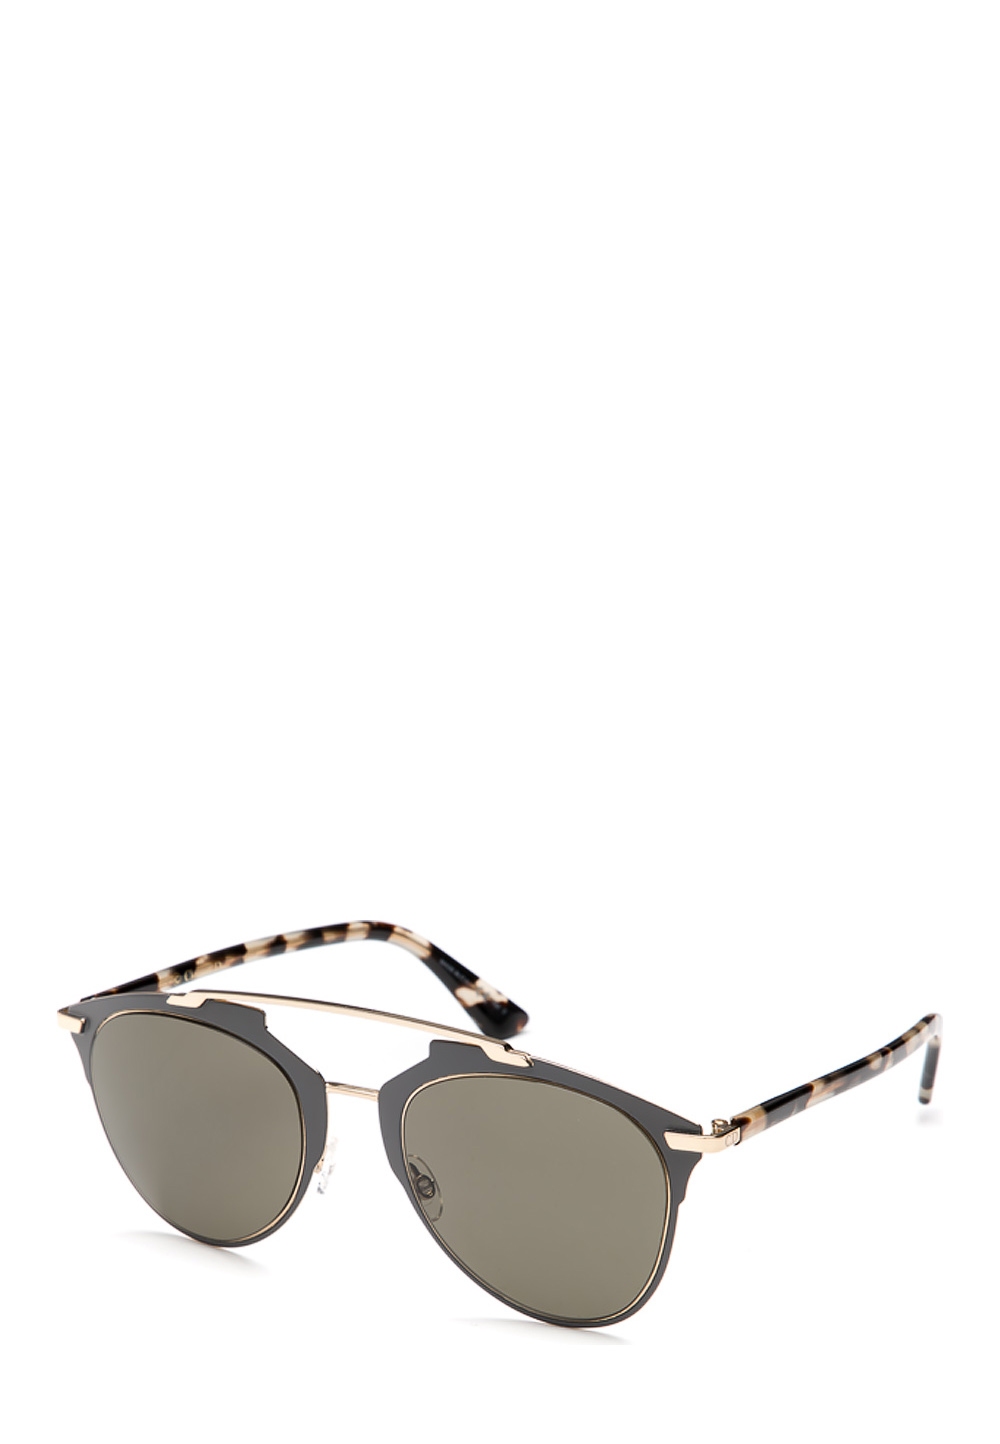 Sonnenbrille reflected, UV 400, grau gold